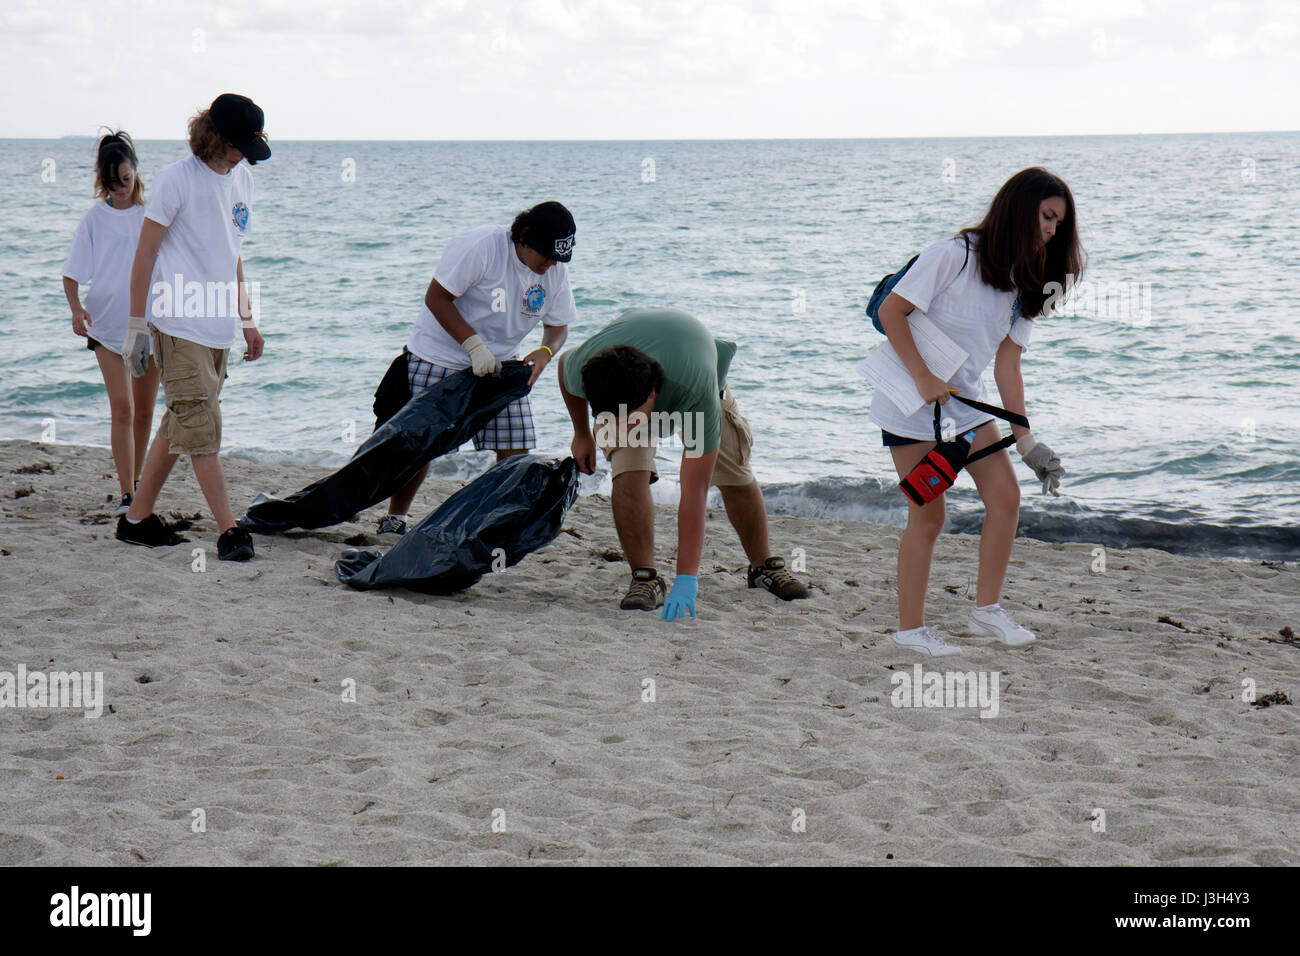 Miami Beach Florida Lummus Park International Coastal Cleanup volunteers student girls boys teenagers teens environment - Stock Image